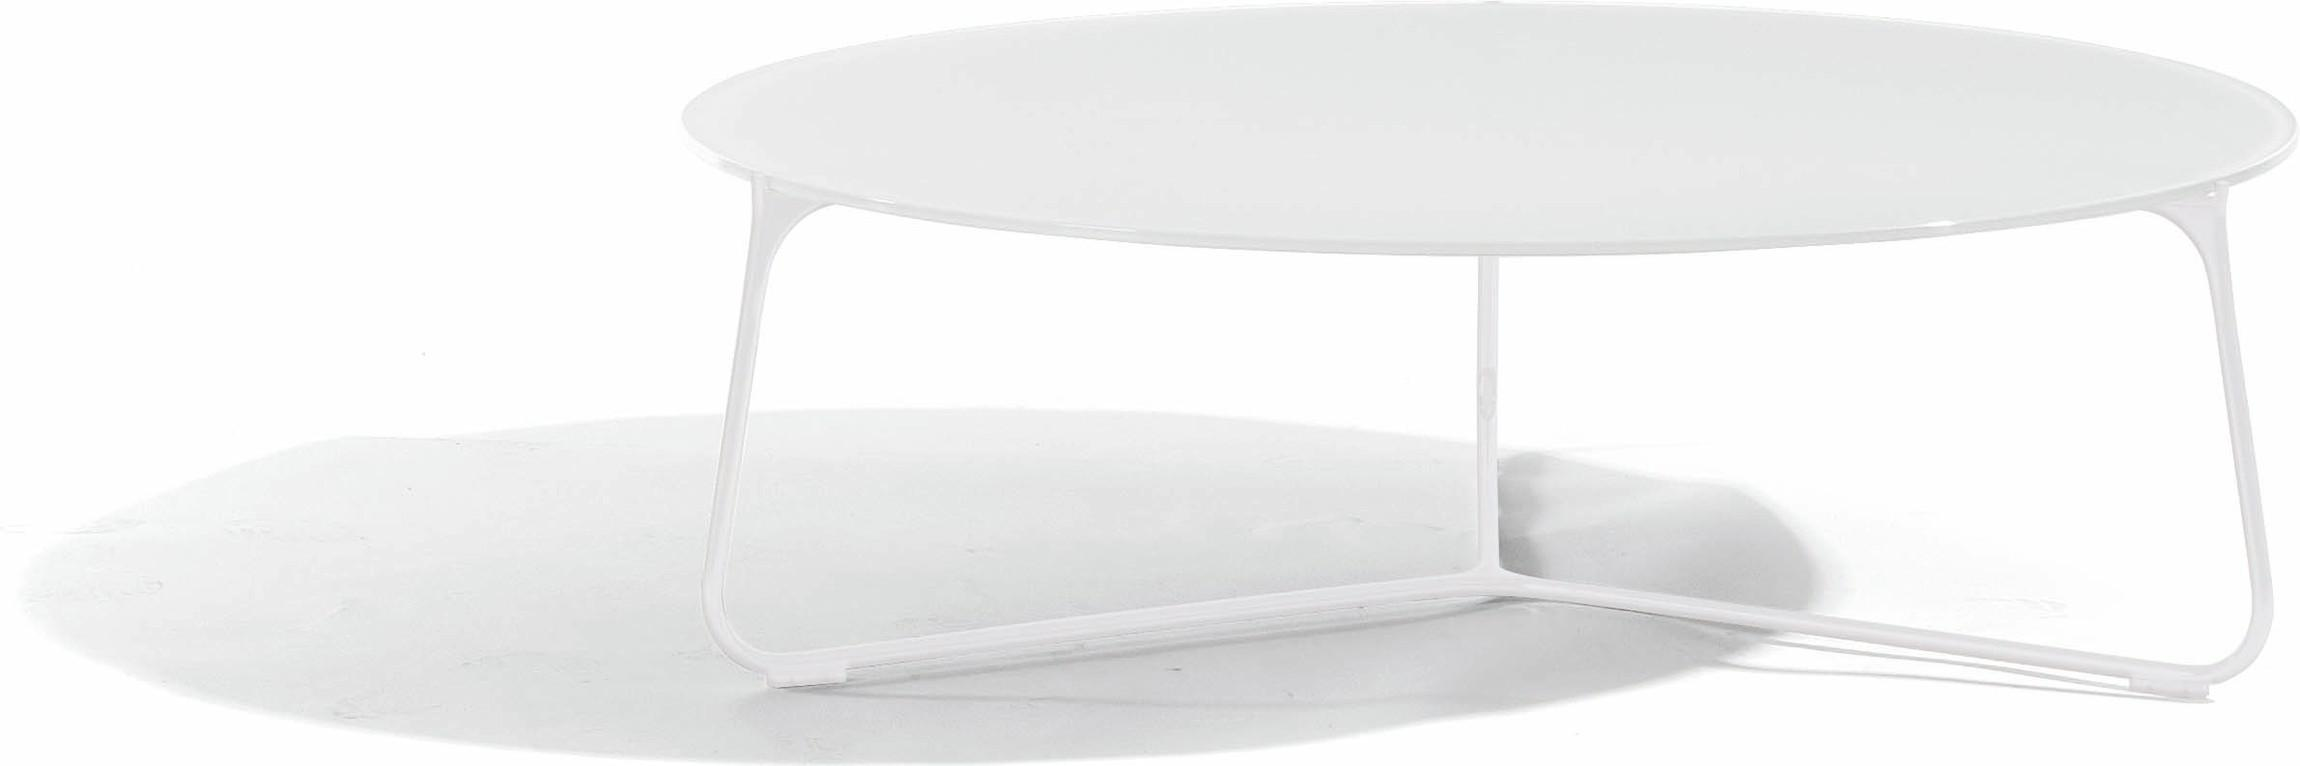 Mood coffee table - white - glass white - 100